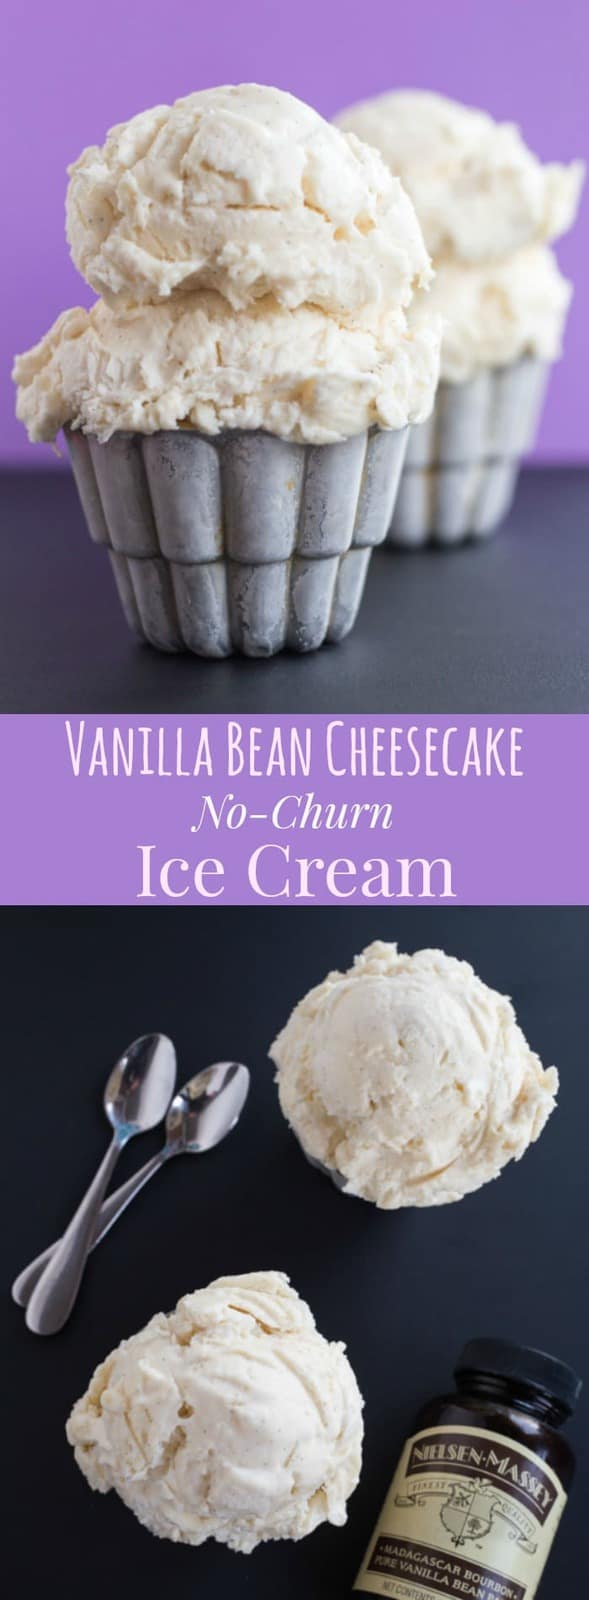 Vanilla Bean Cheesecake No-Churn Ice Cream has the pure essence of vanilla and the irresistible tang of cheesecake in a rich and creamy frozen dessert. Four ingredients and no ice cream maker needed and only four ingredients! | cupcakesandkalechips.com